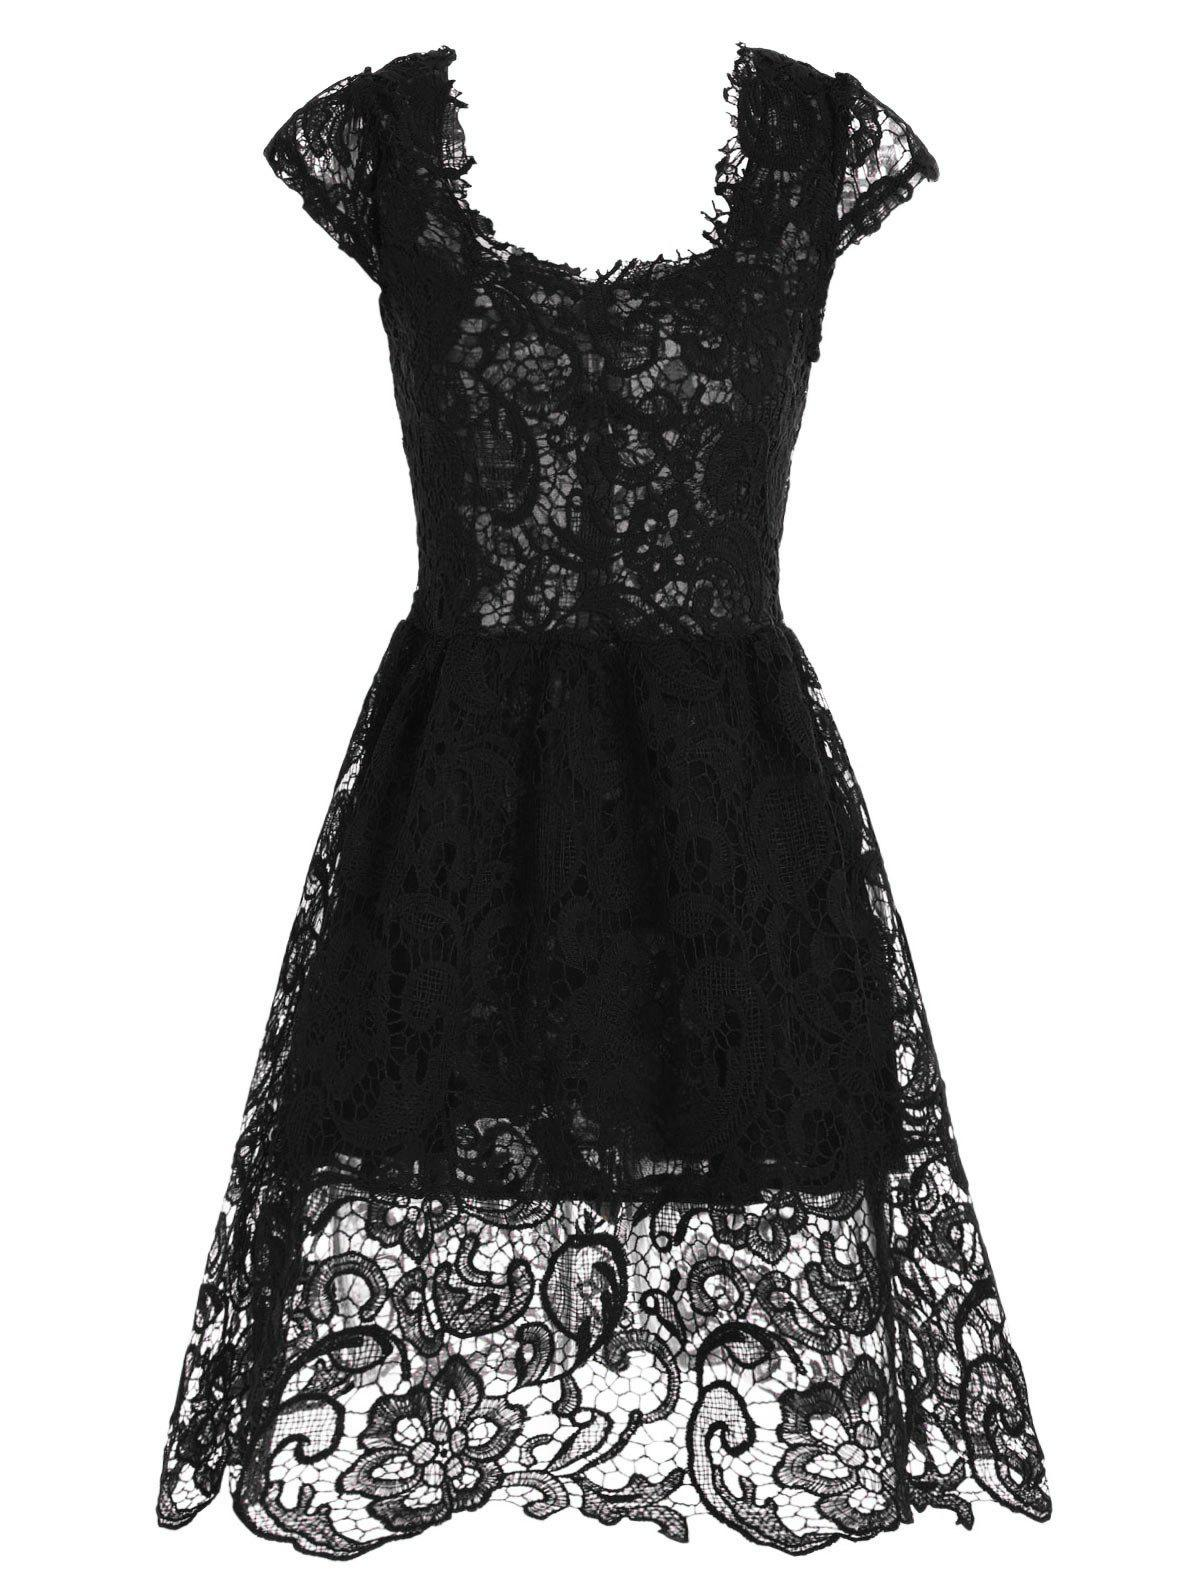 Cocktail Lace Short Fit and Flare Prom Dress lace overlay fit and flare dress